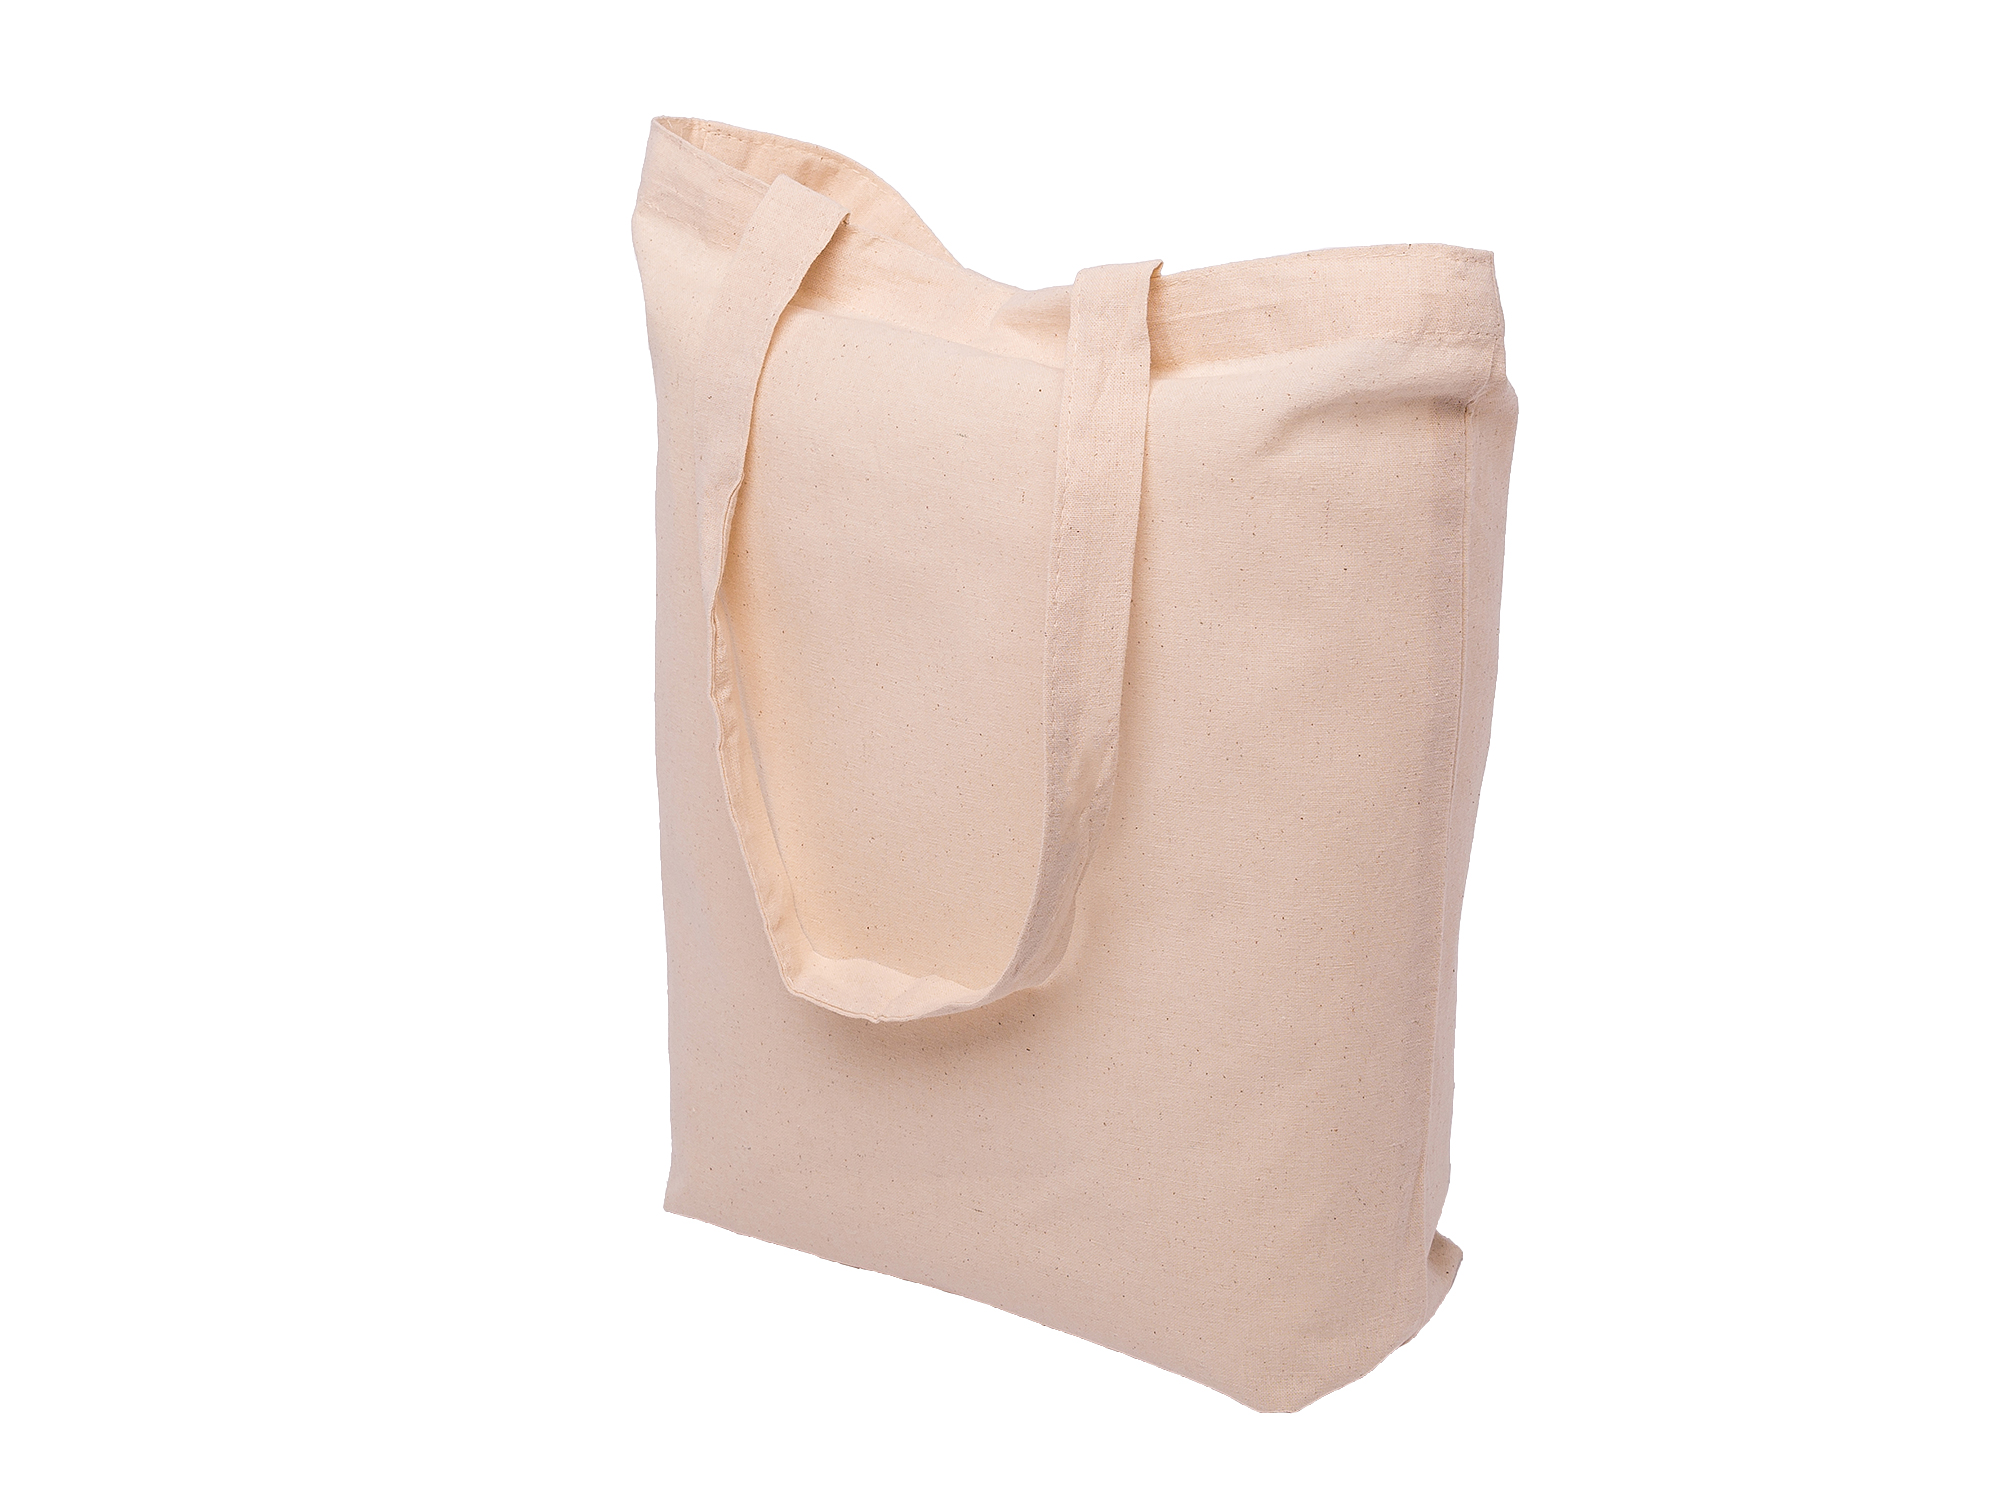 Item COTTON BAG for shopping ECRU ECO environmental